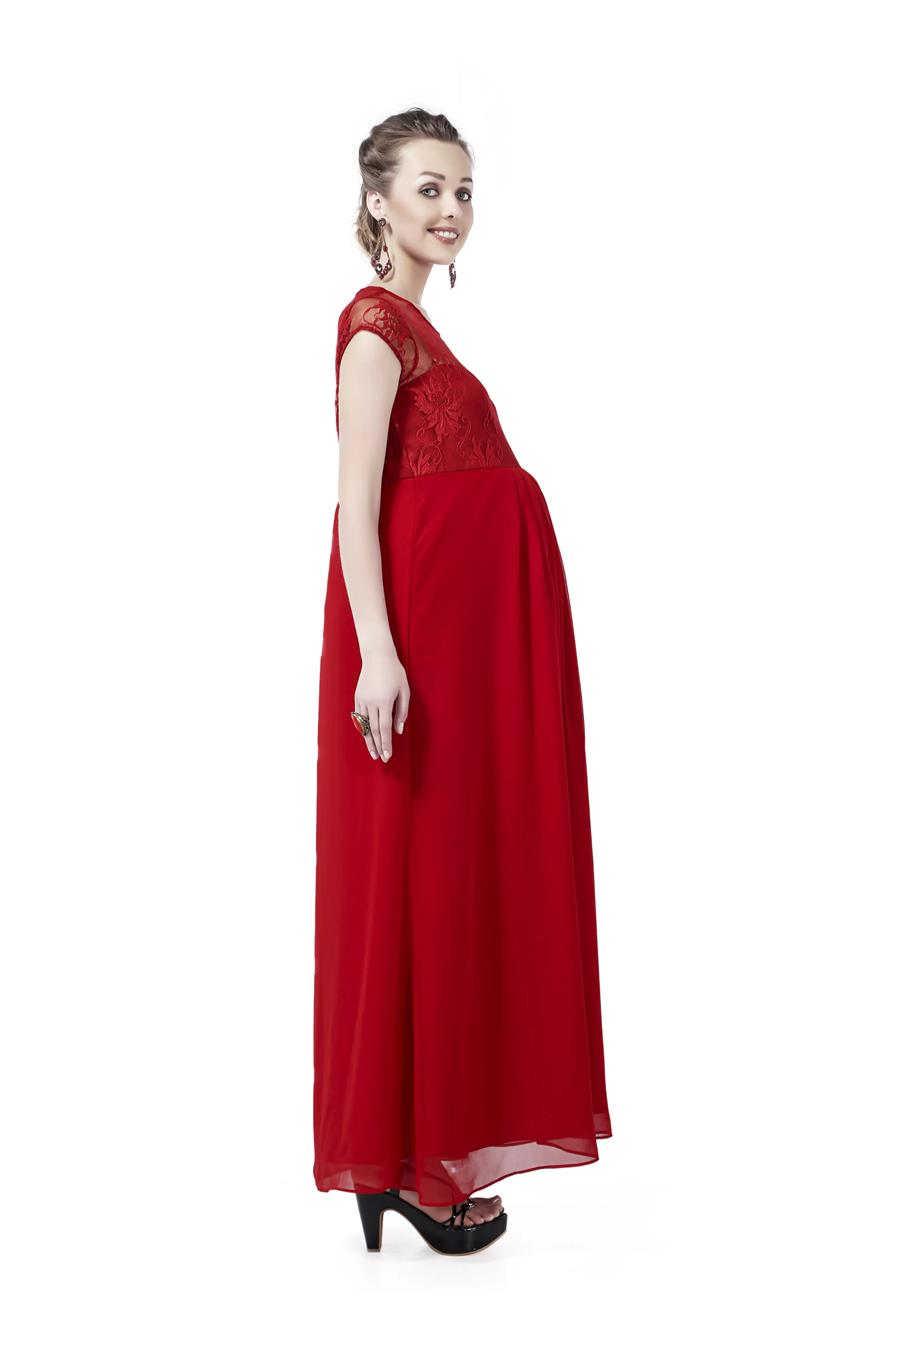 Innovative presents Long Maternity Dress